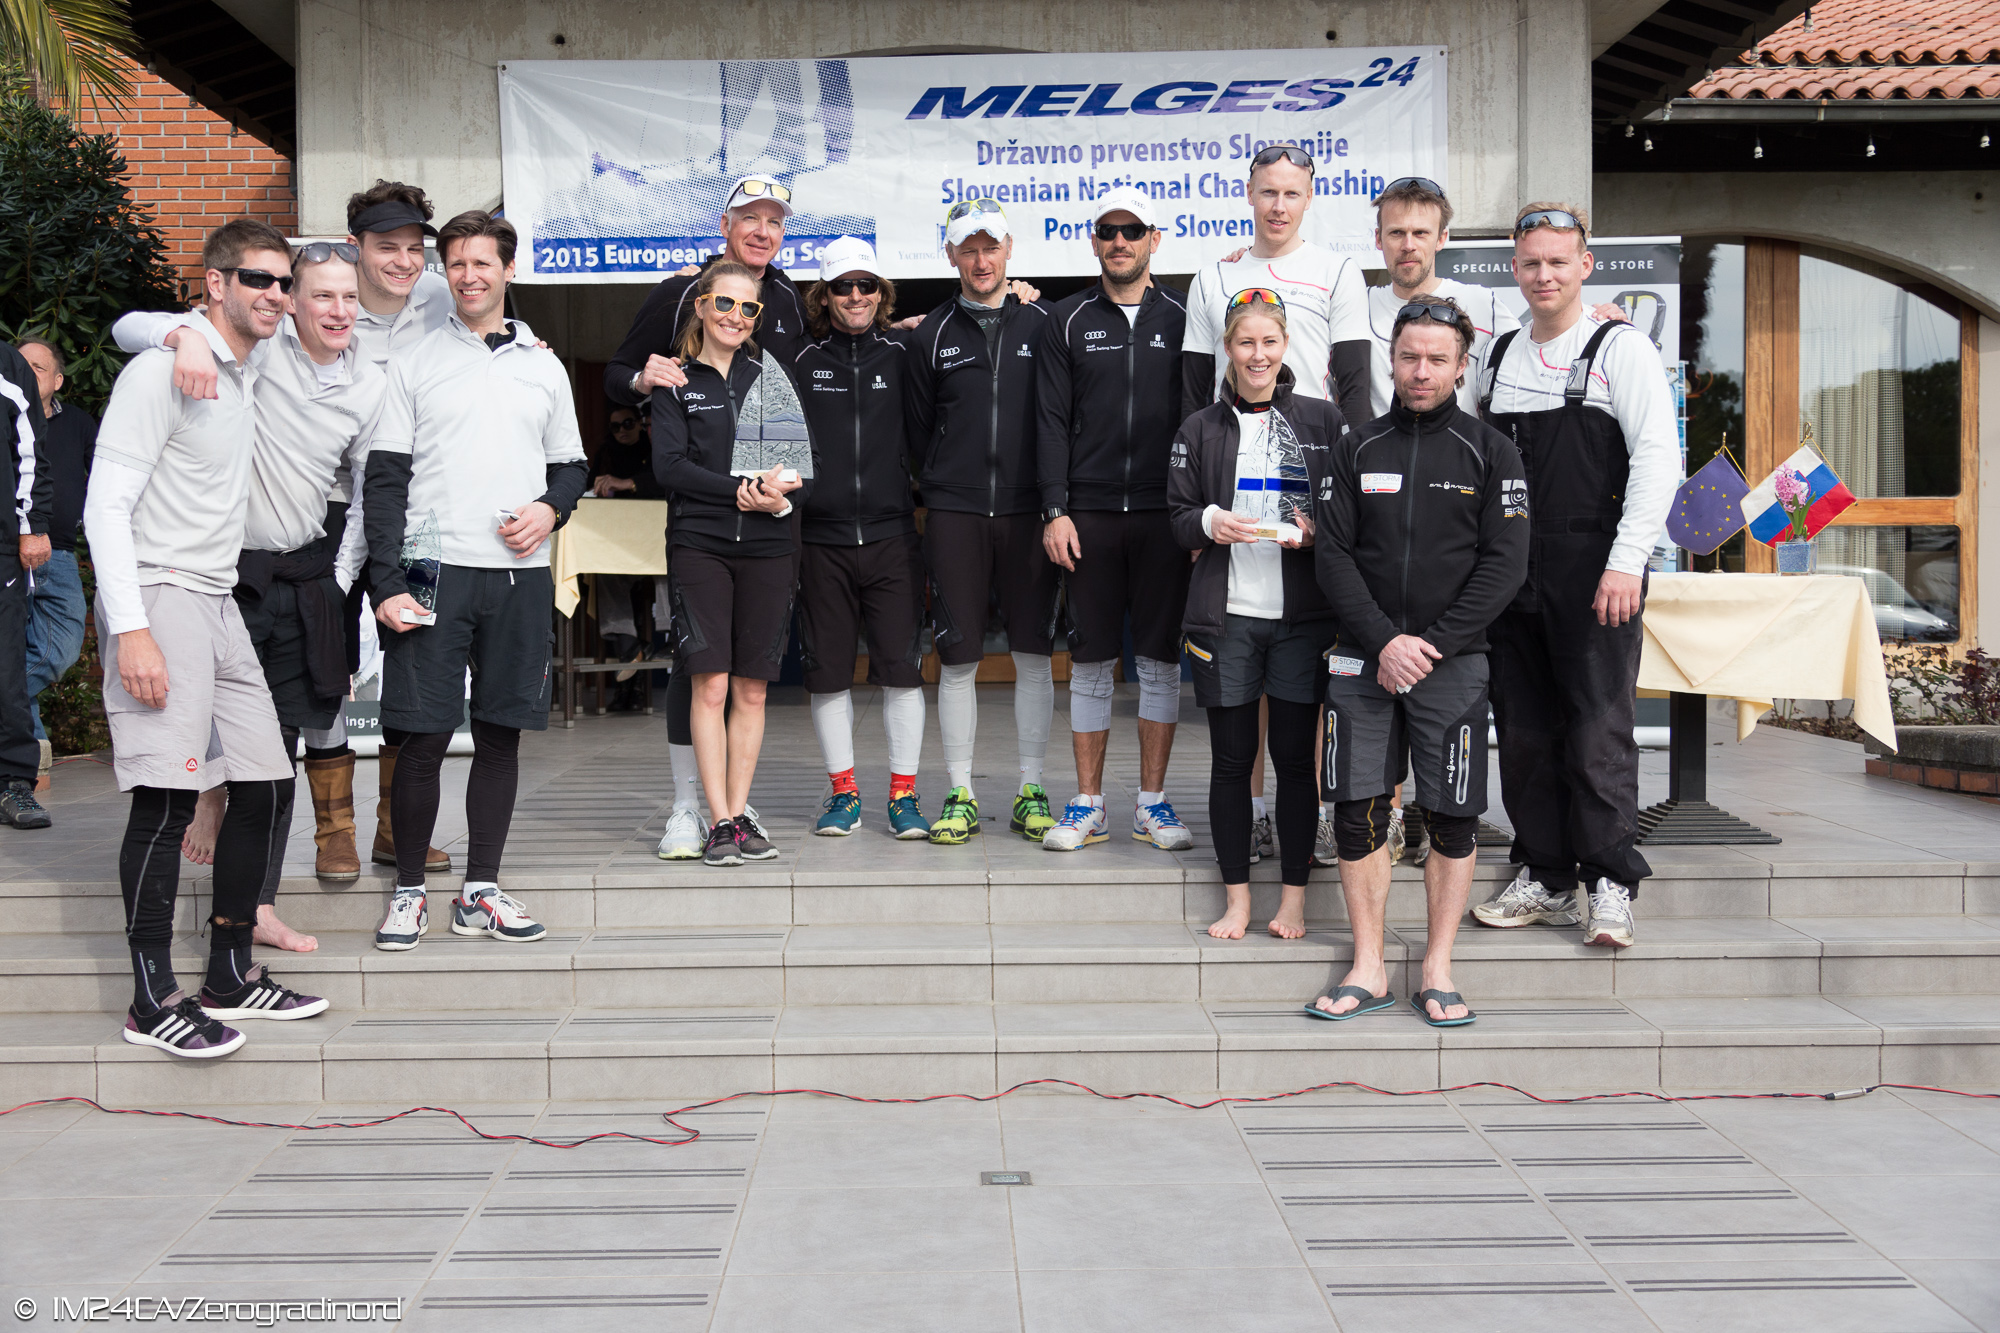 Top 3 Pro teams at the Portoroz Melges 24 Regatta